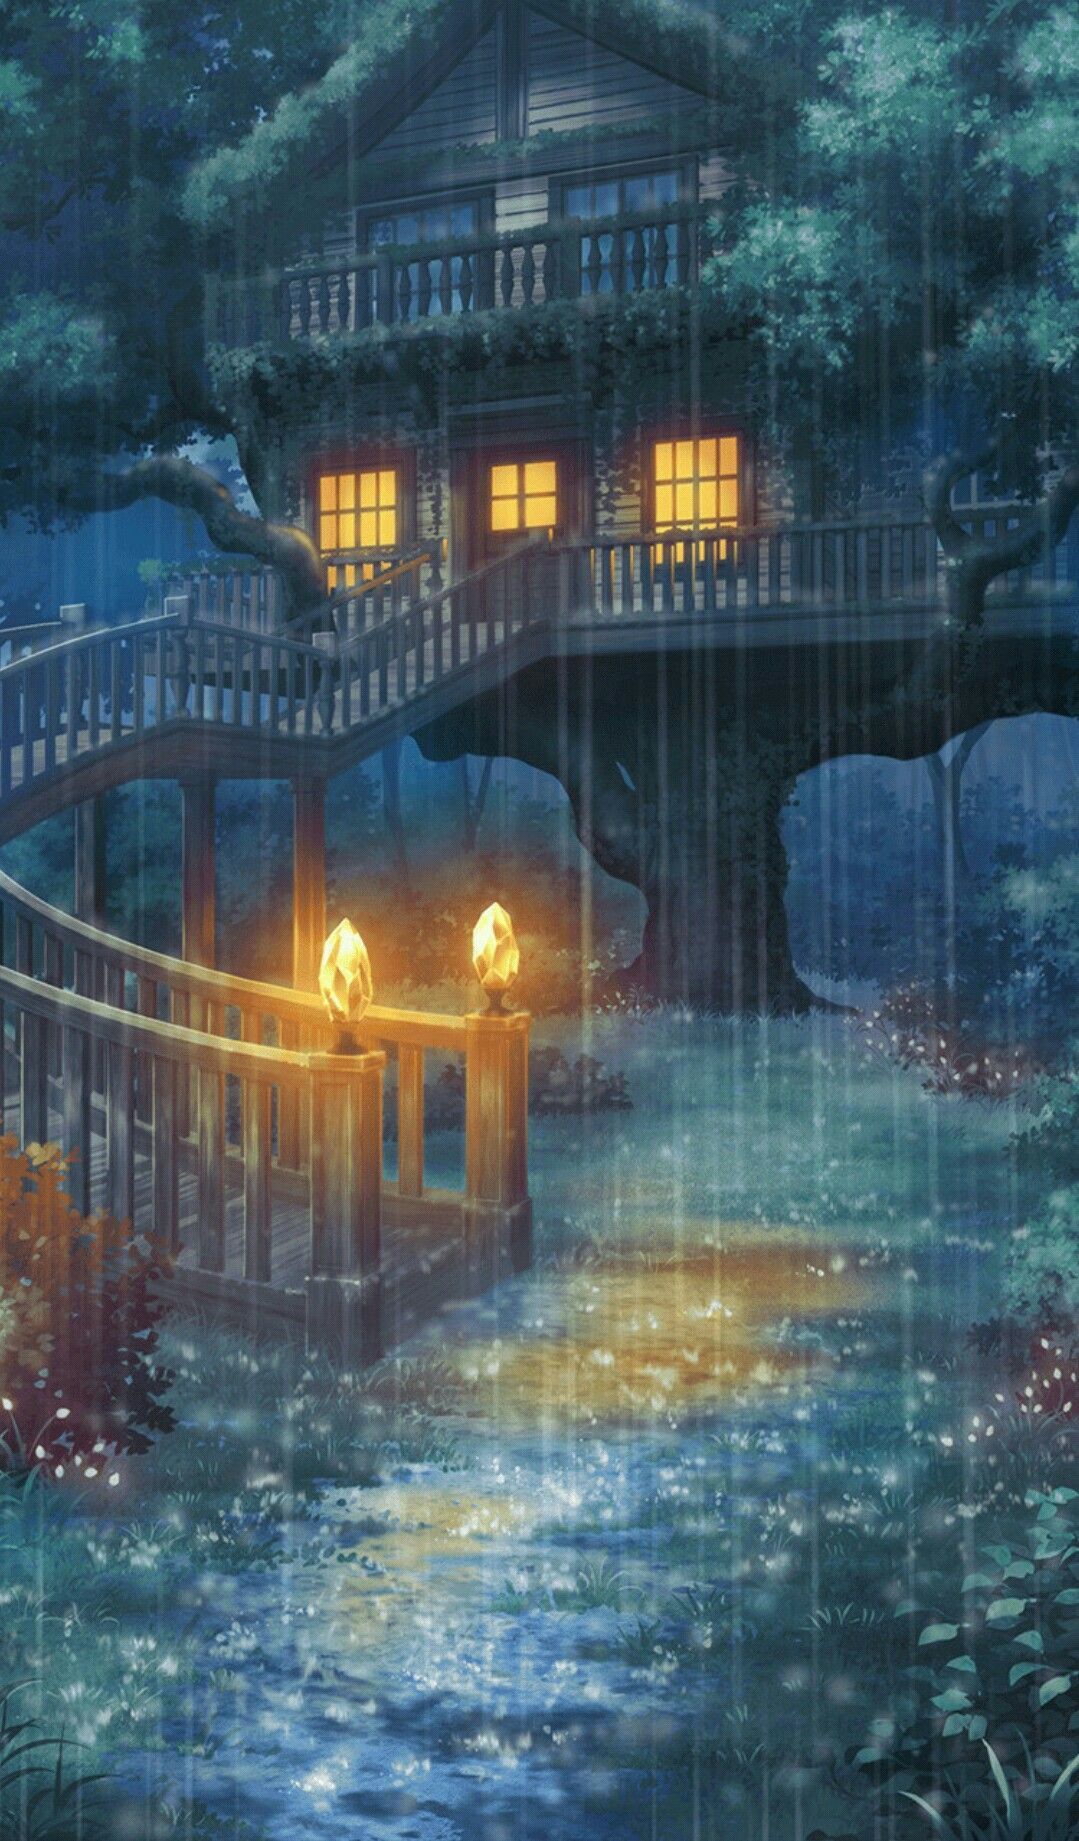 Pin By Alice On Ikemen Revolution Fantasy Art Landscapes Anime Places Anime Backgrounds Wallpapers